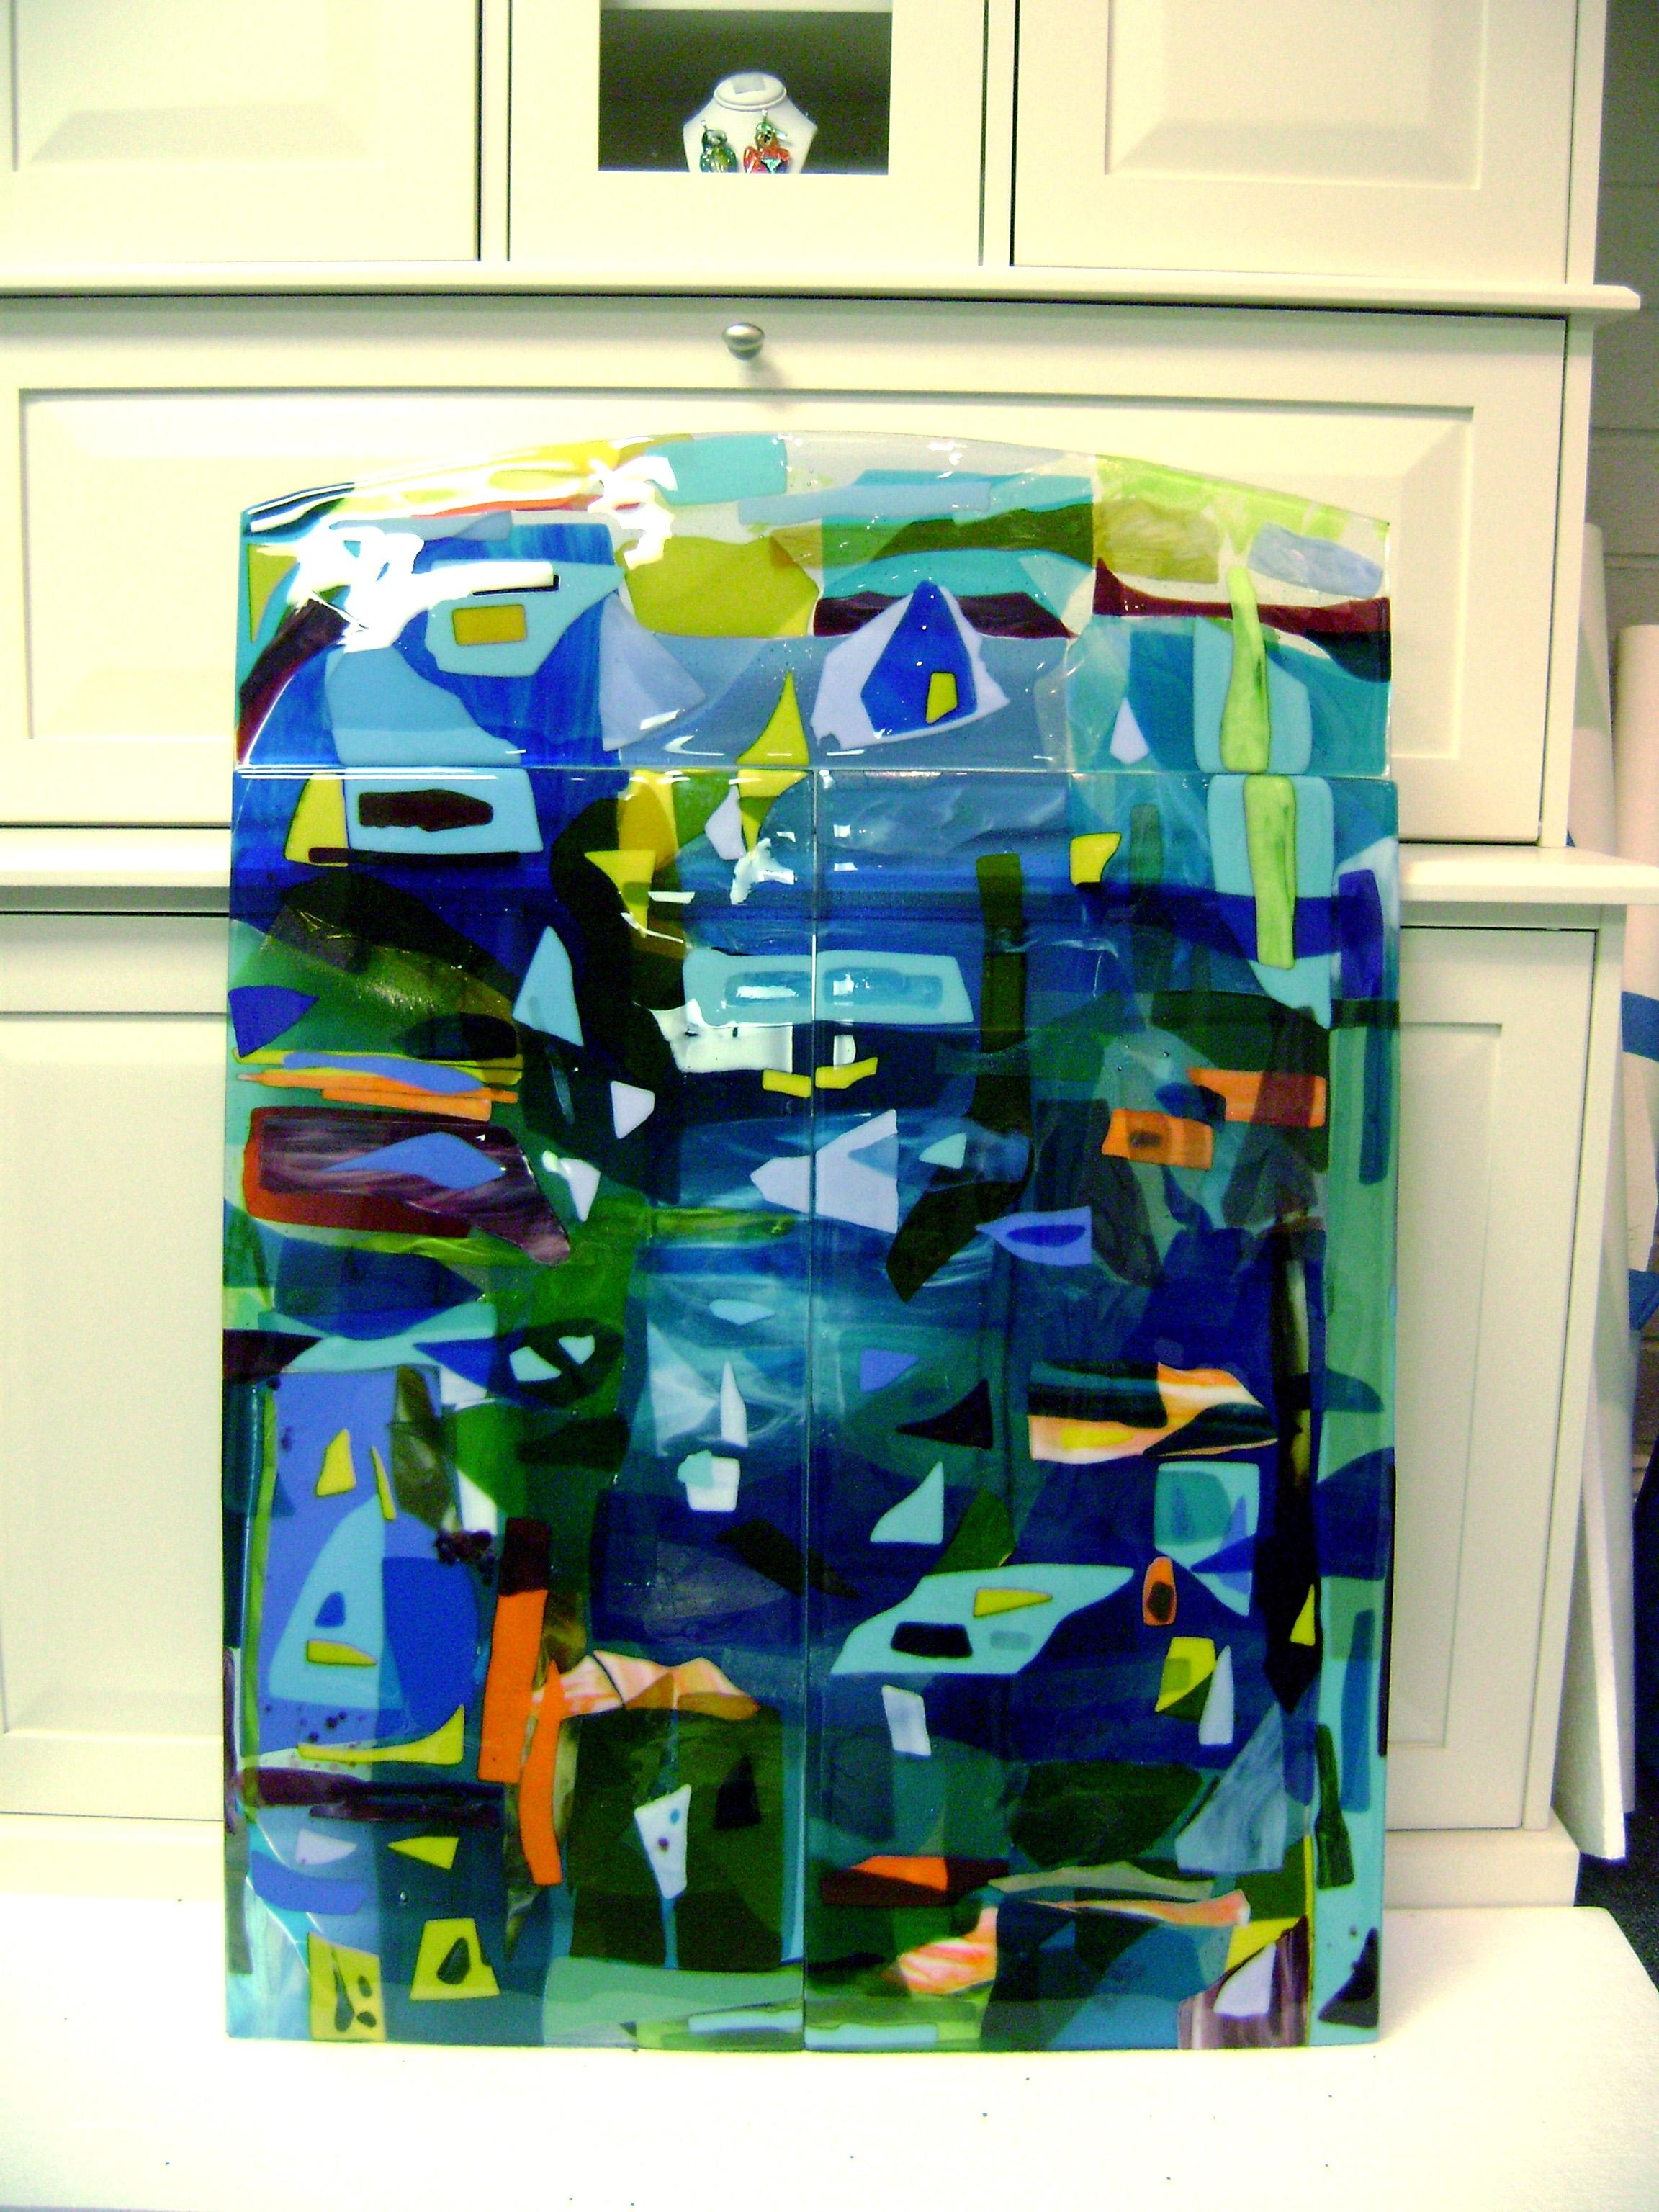 Colorful Fused Glass Wall Art Panel | Designer Glass Mosaics Inside Fused Glass Wall Art (Image 9 of 20)